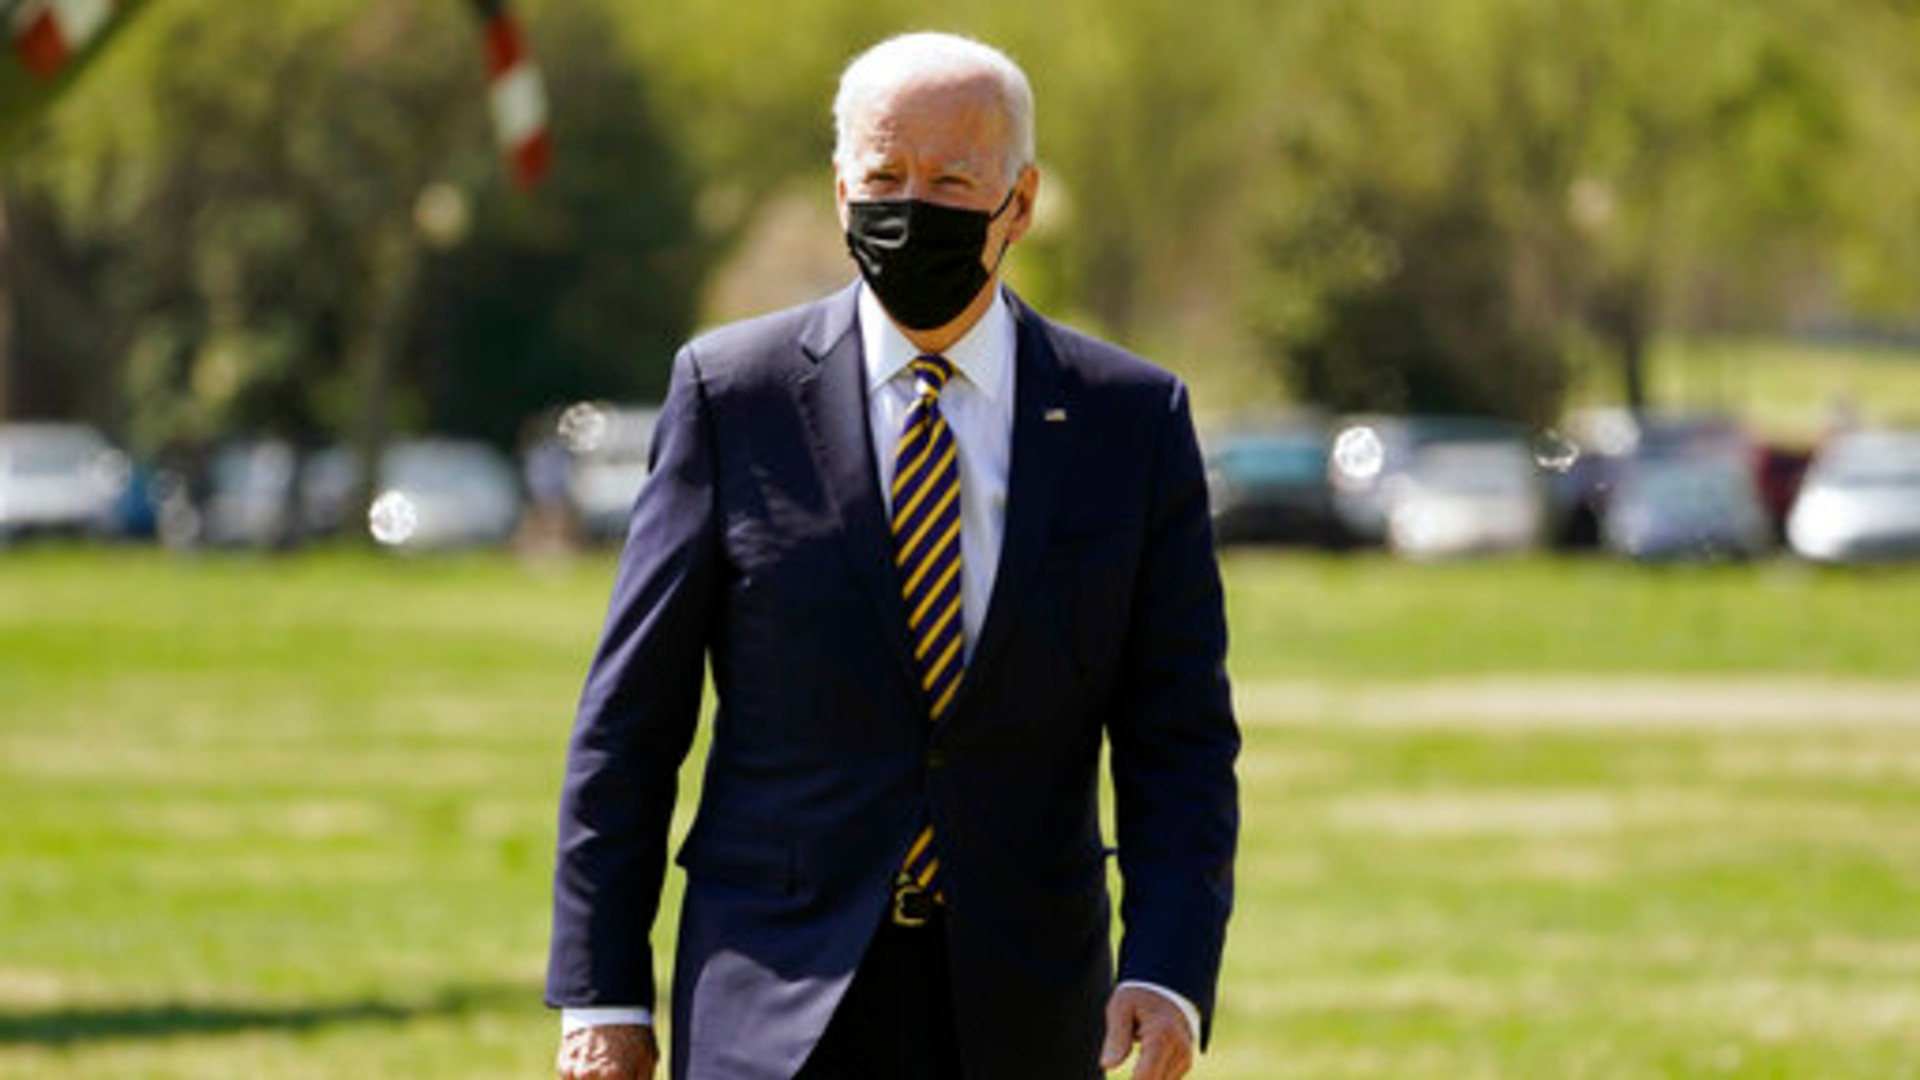 President Joe Biden walks over to speak to members of the media after arriving on the Ellipse on the National Mall after spending the weekend at Camp David, Monday, April 5, 2021, in Washington. (AP Photo/Evan Vucci)